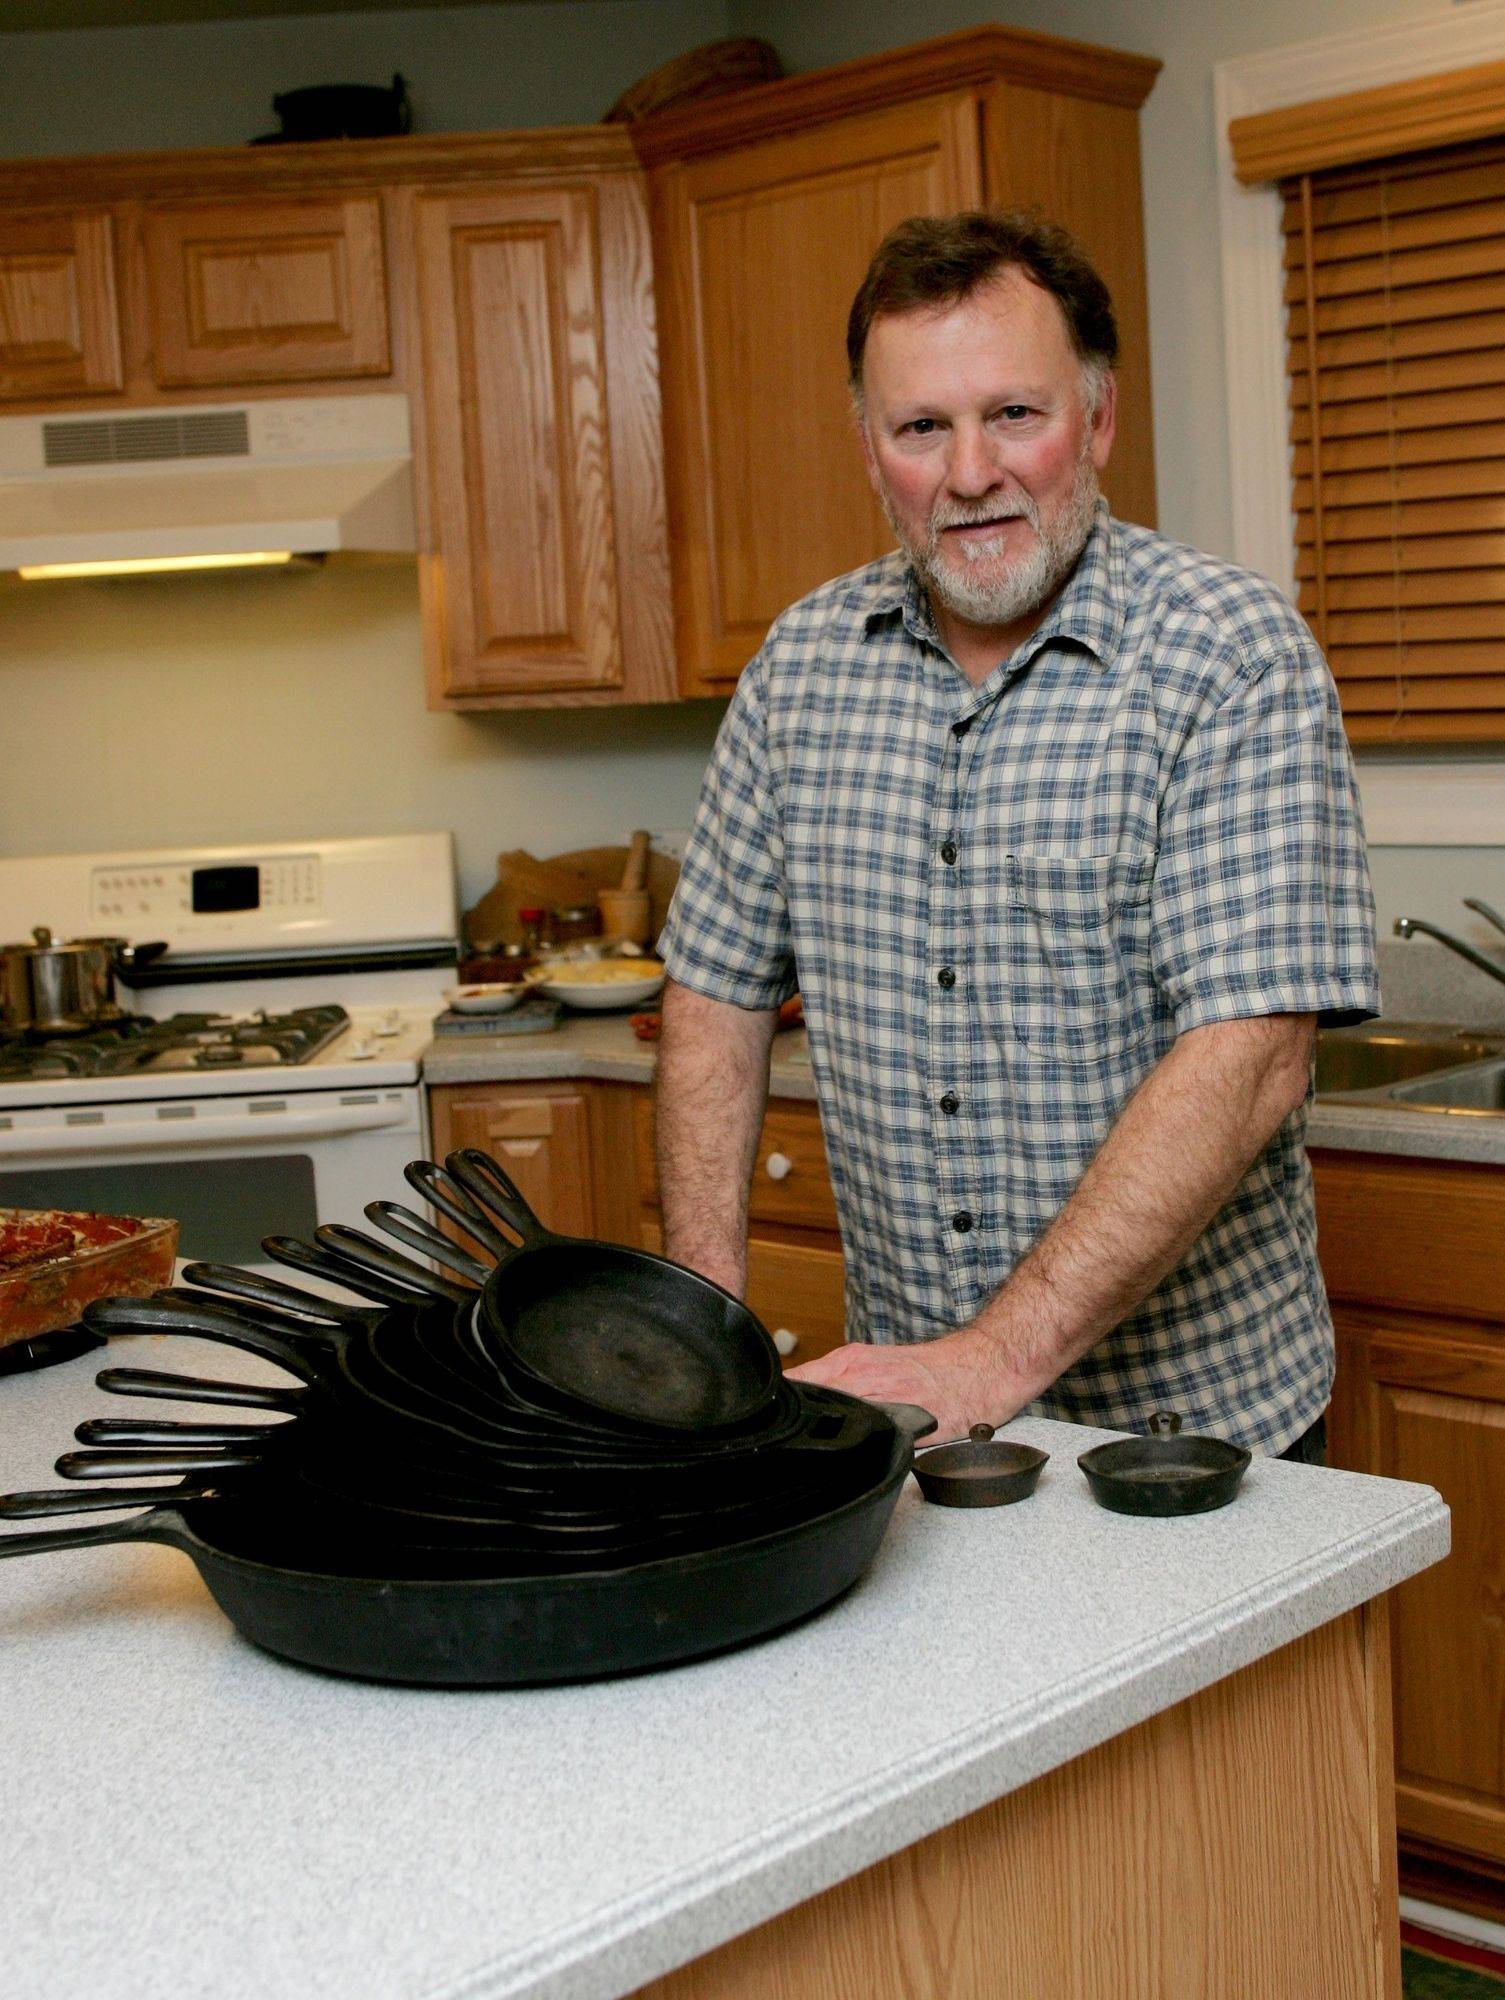 When he cooks indoors, Marty O'Brien favors the heavy-duty, heat-holding ability of cast iron pans.